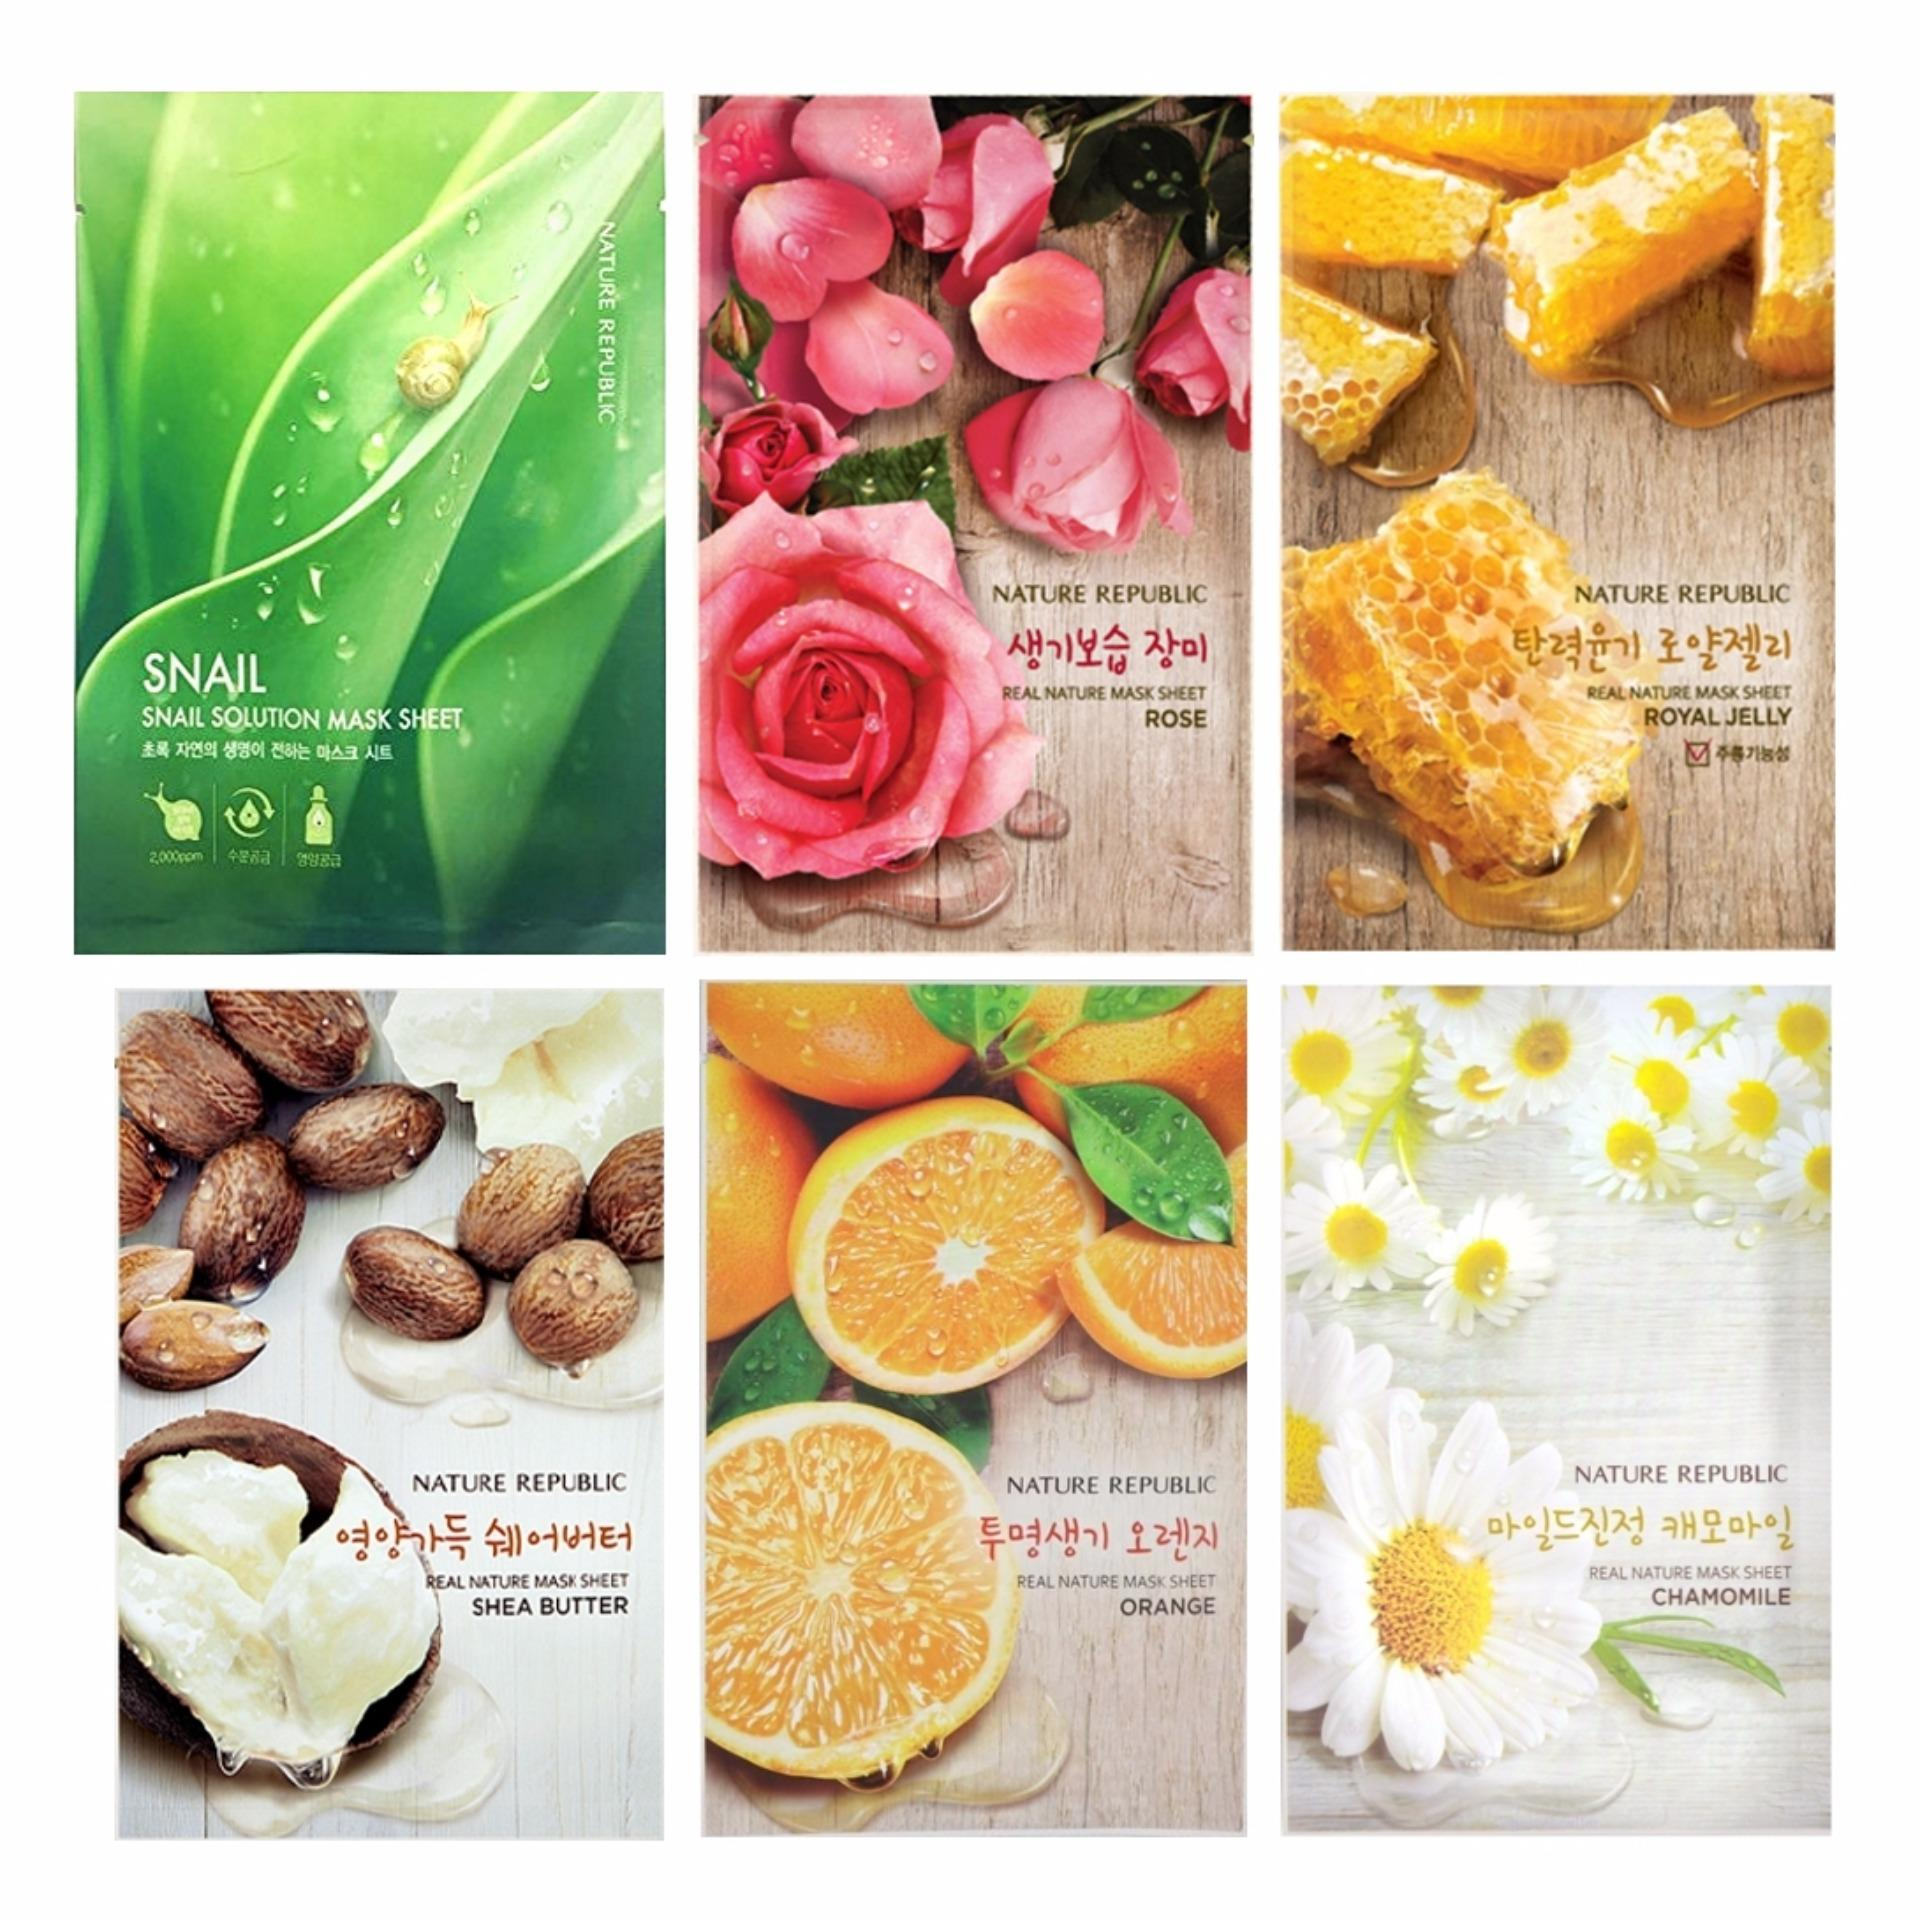 Harga Penawaran Nature Republic Mask Sheet Buy 5 Get 1 Free Masker Bundle C